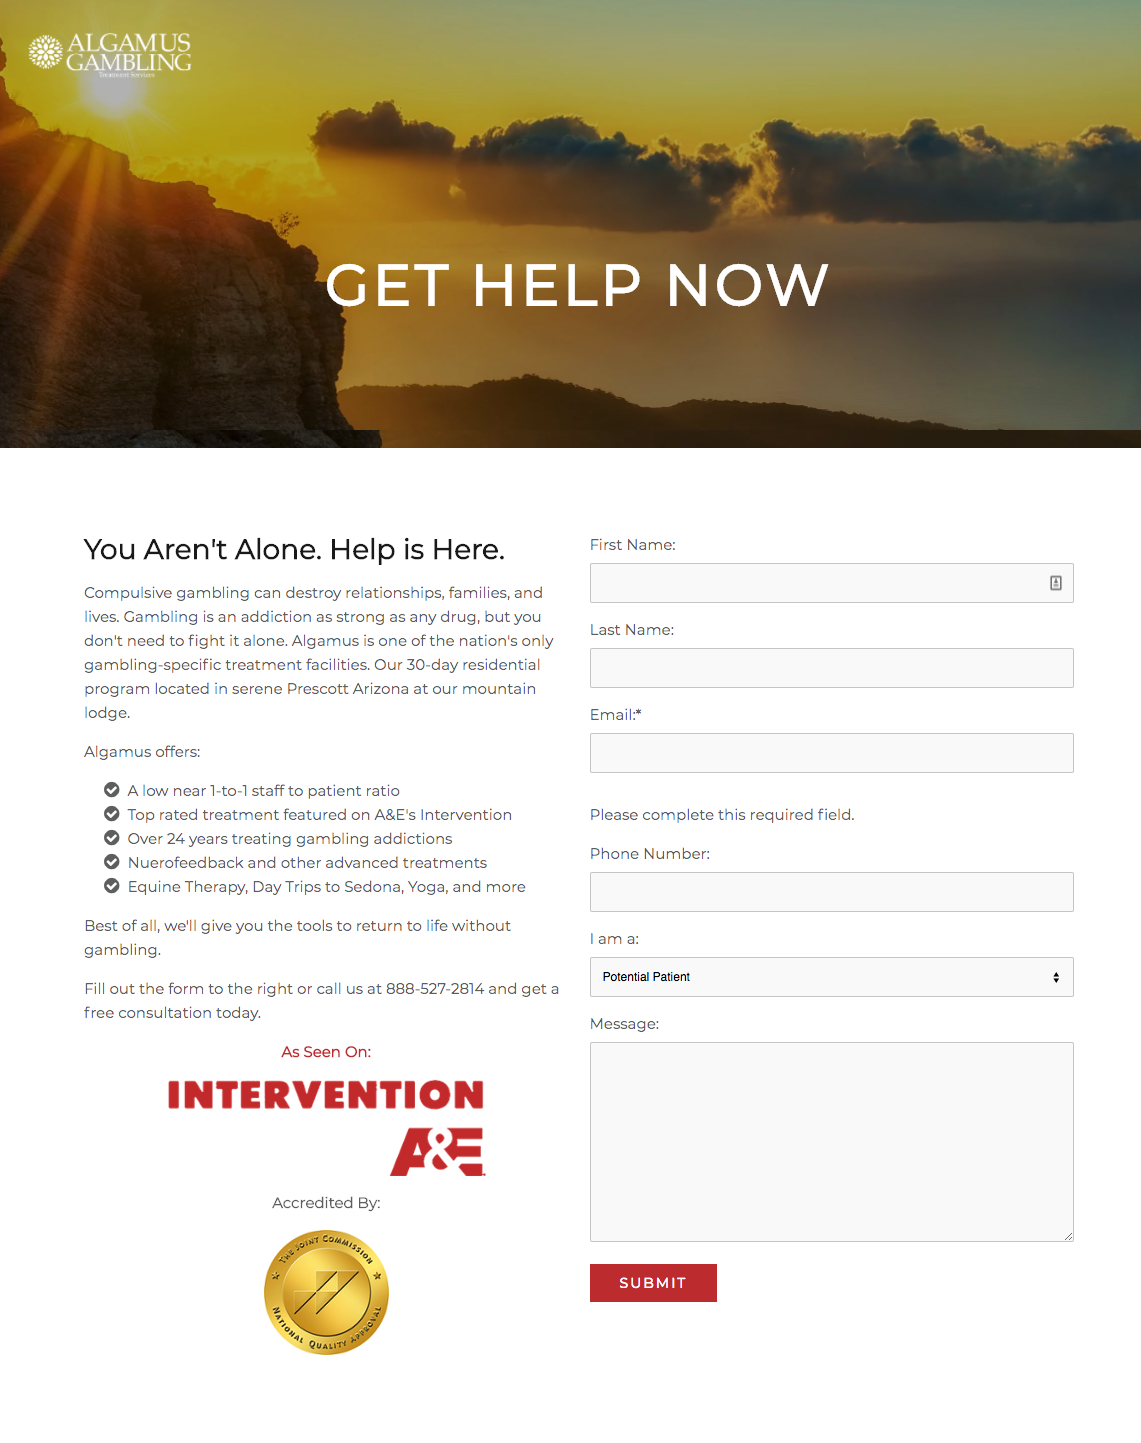 Get Help Now Landing Page